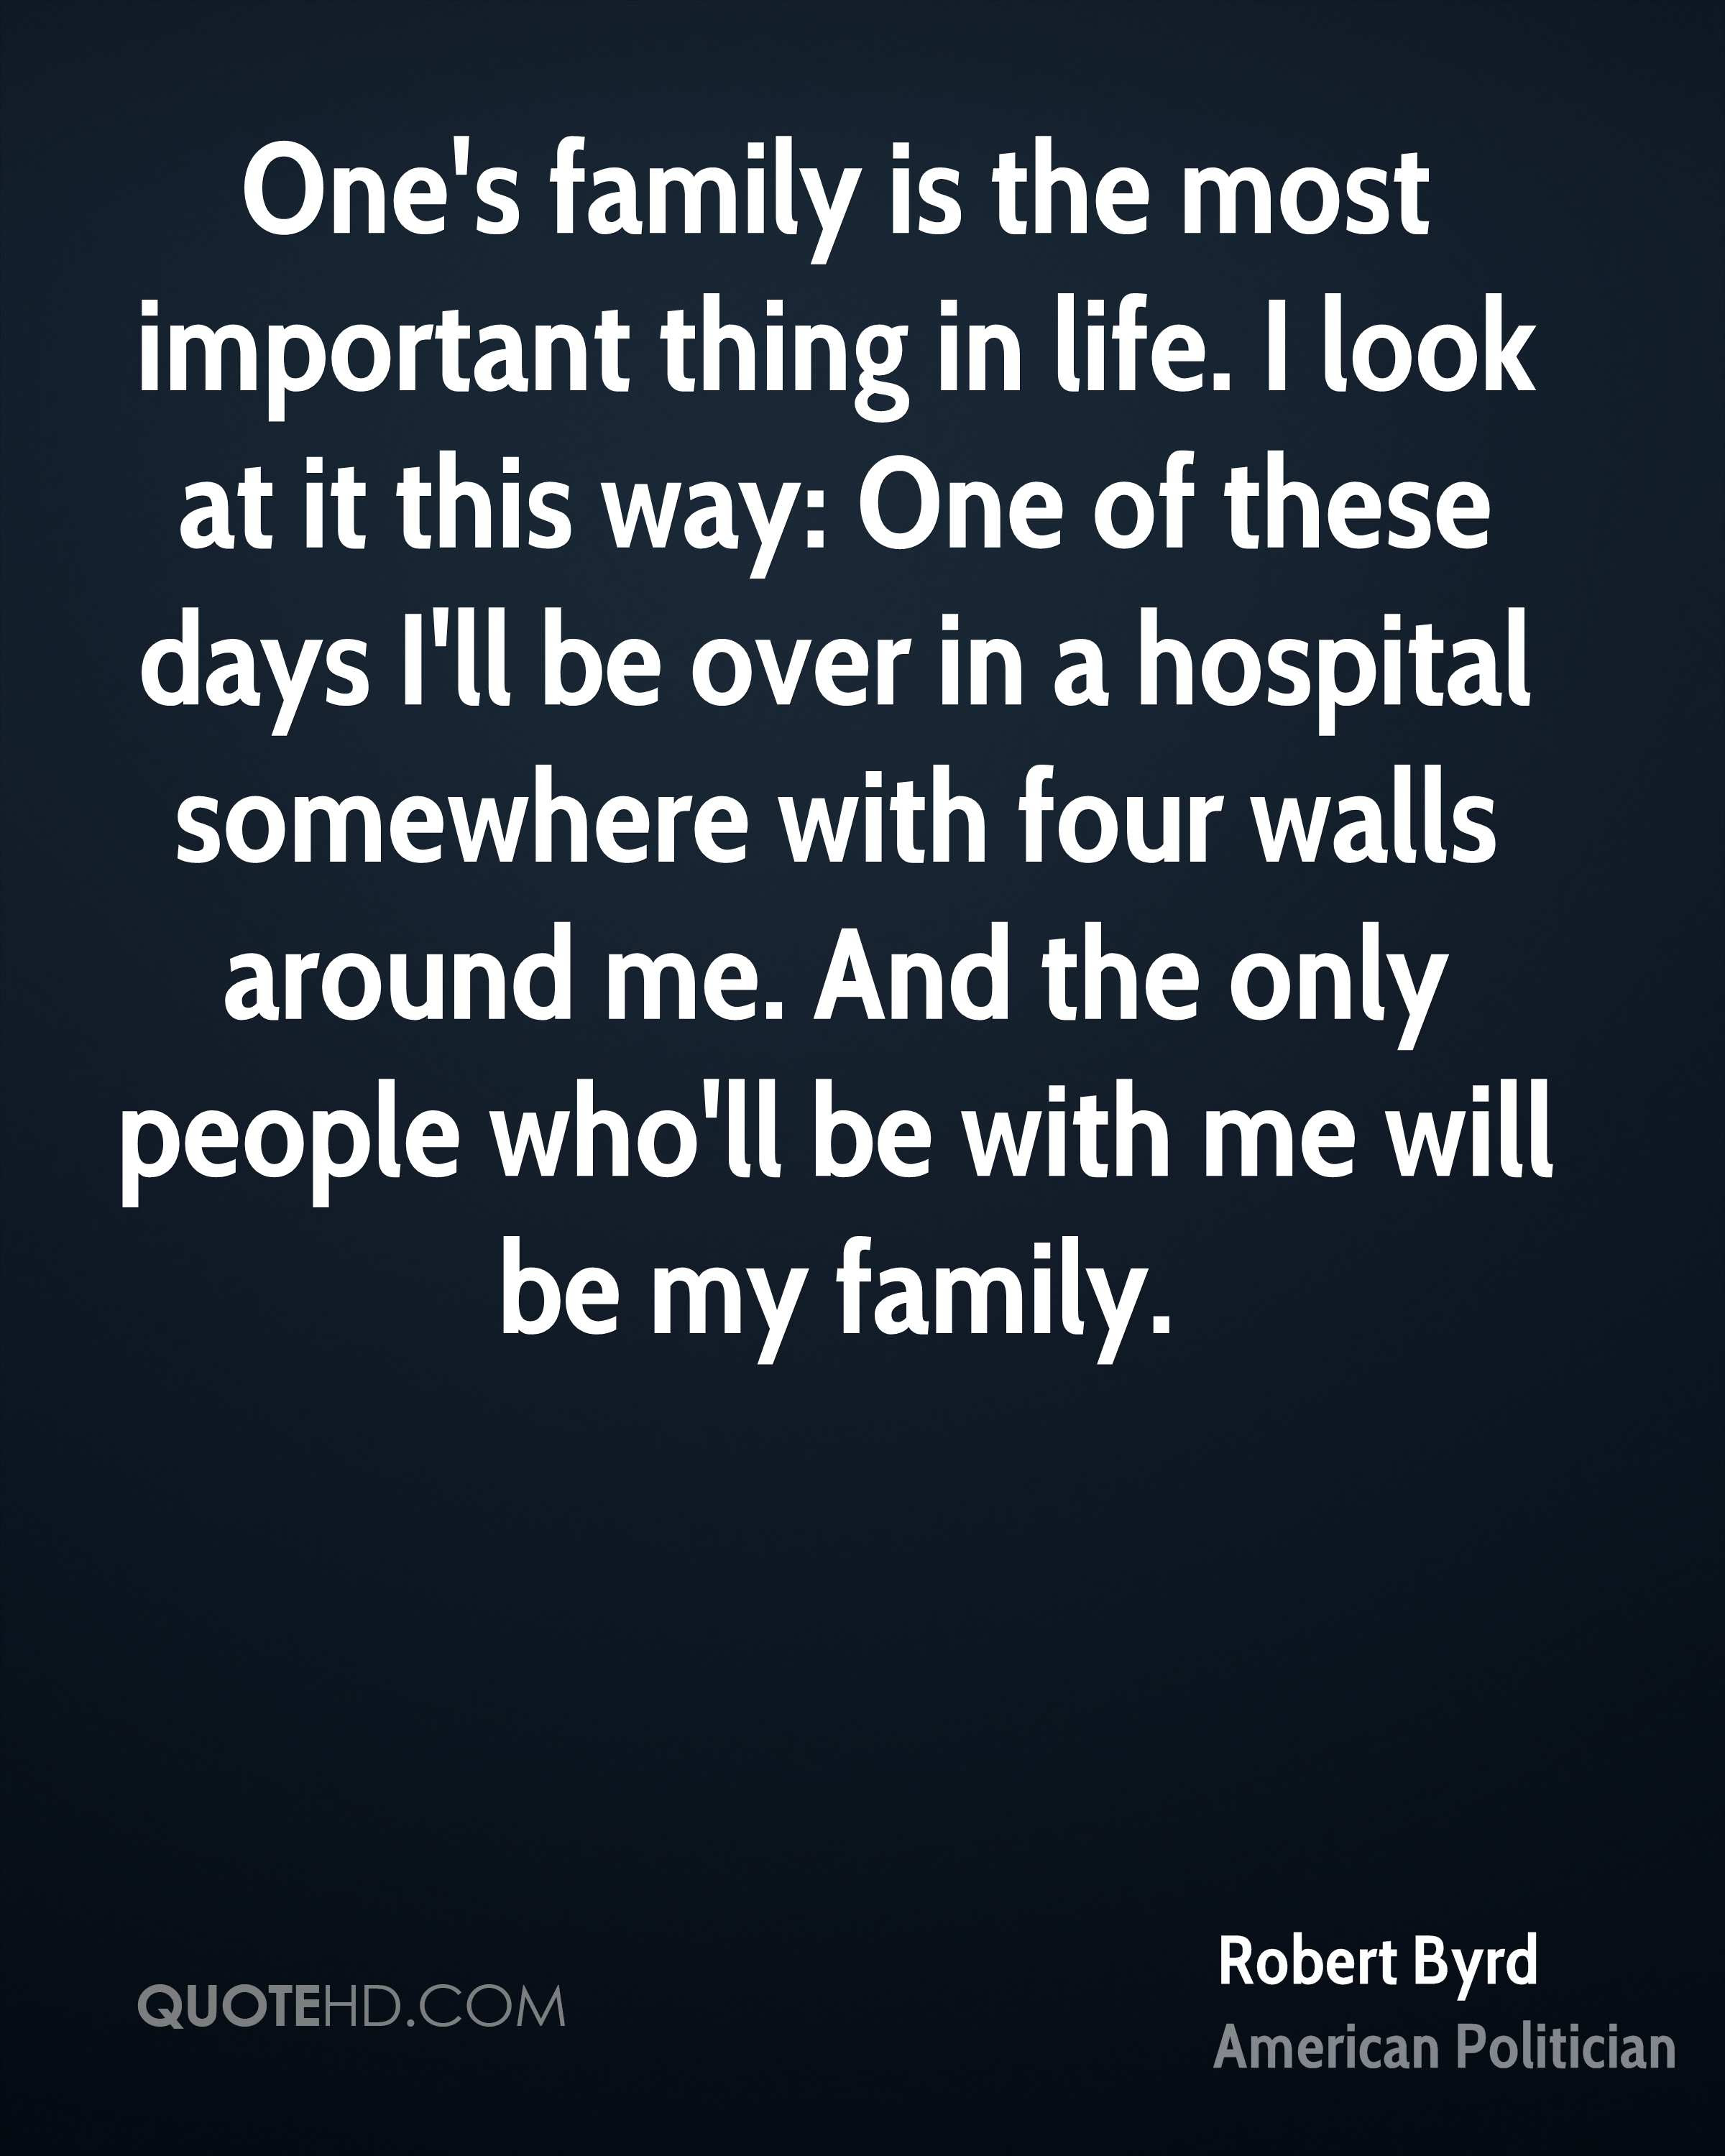 Robert Byrd Family Quotes Quotehd